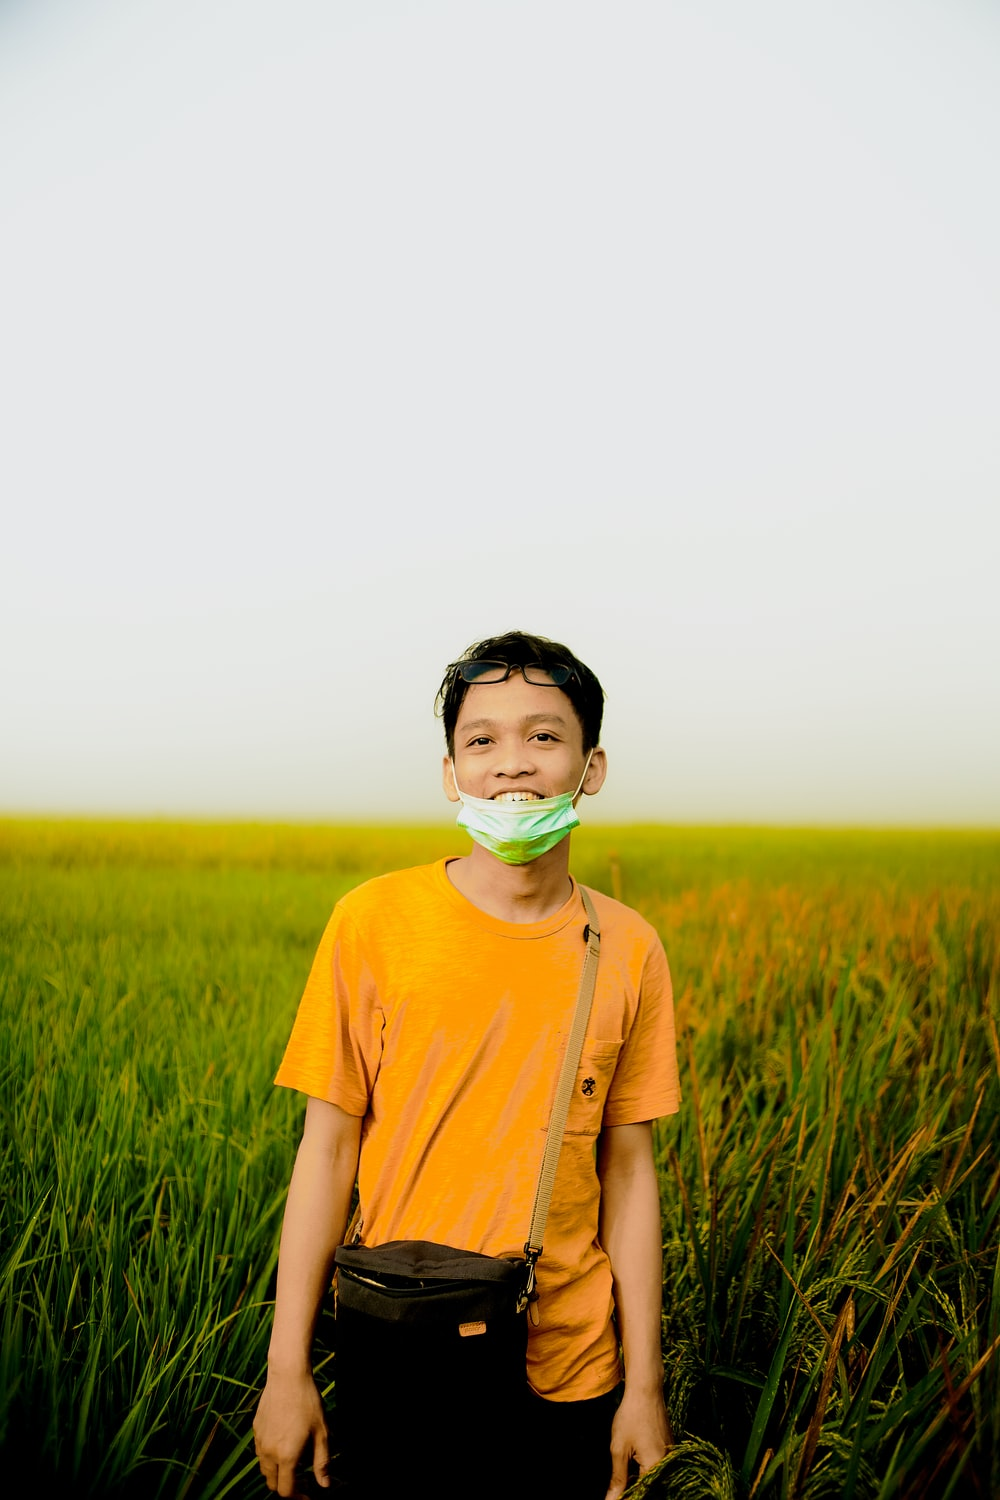 man in blue crew neck t-shirt wearing green mask standing on green grass field during